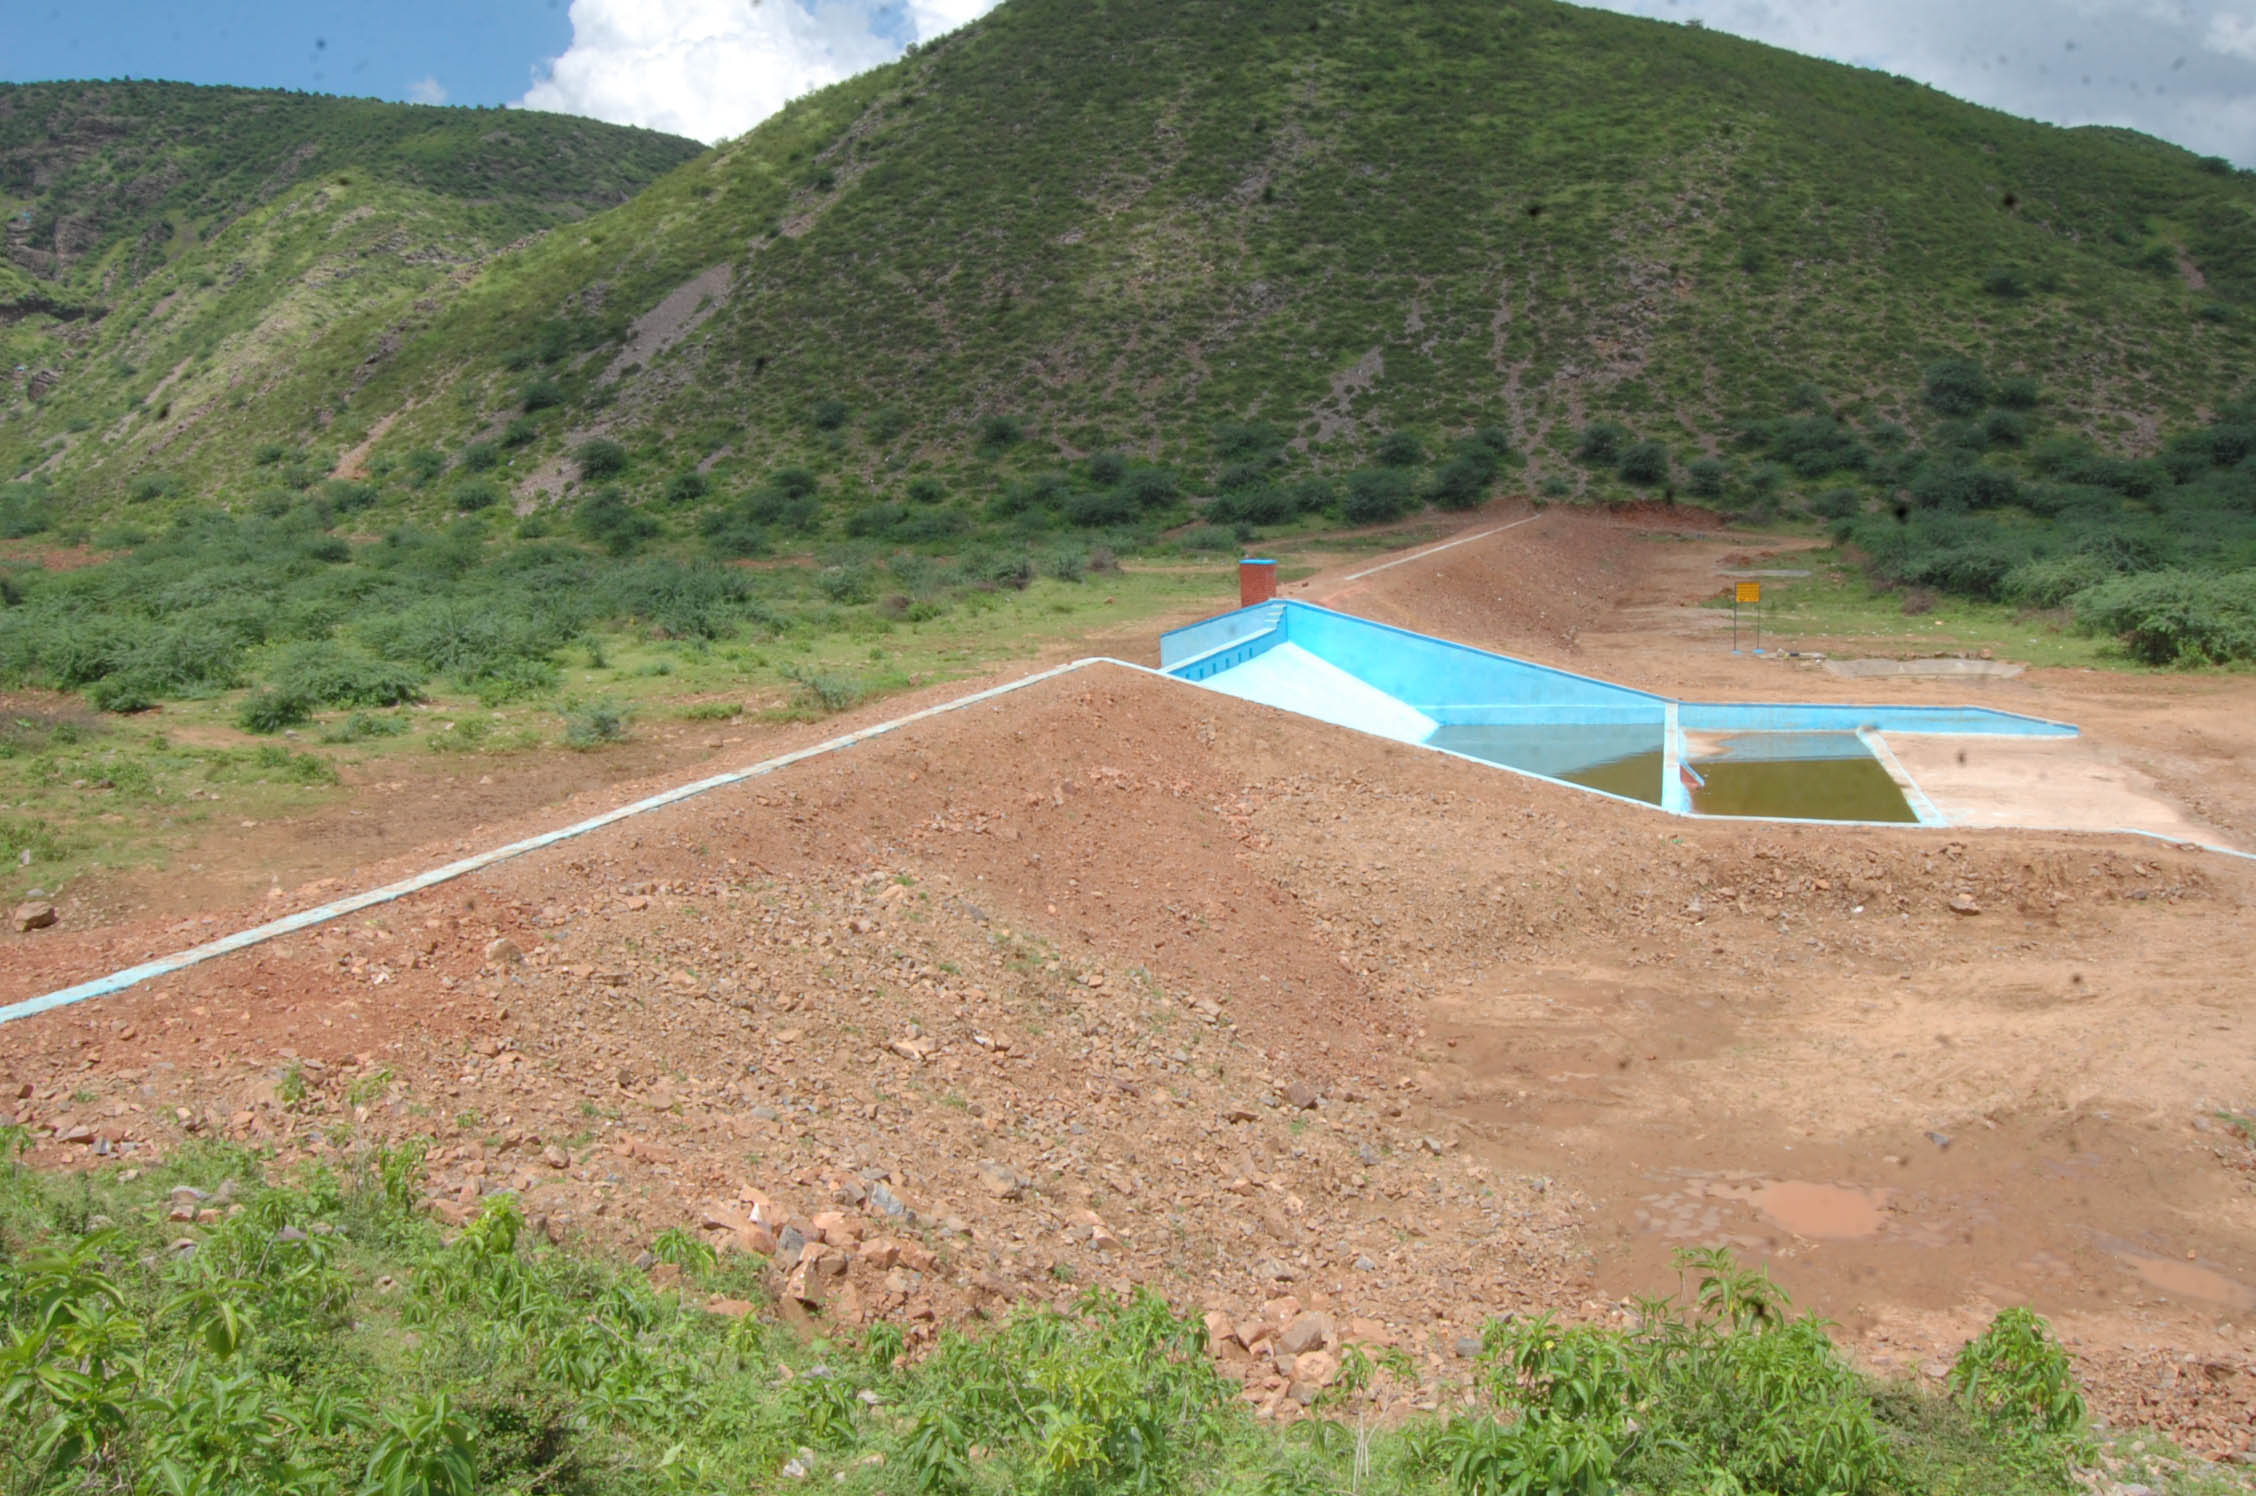 A check dam sits nestled in the hills.